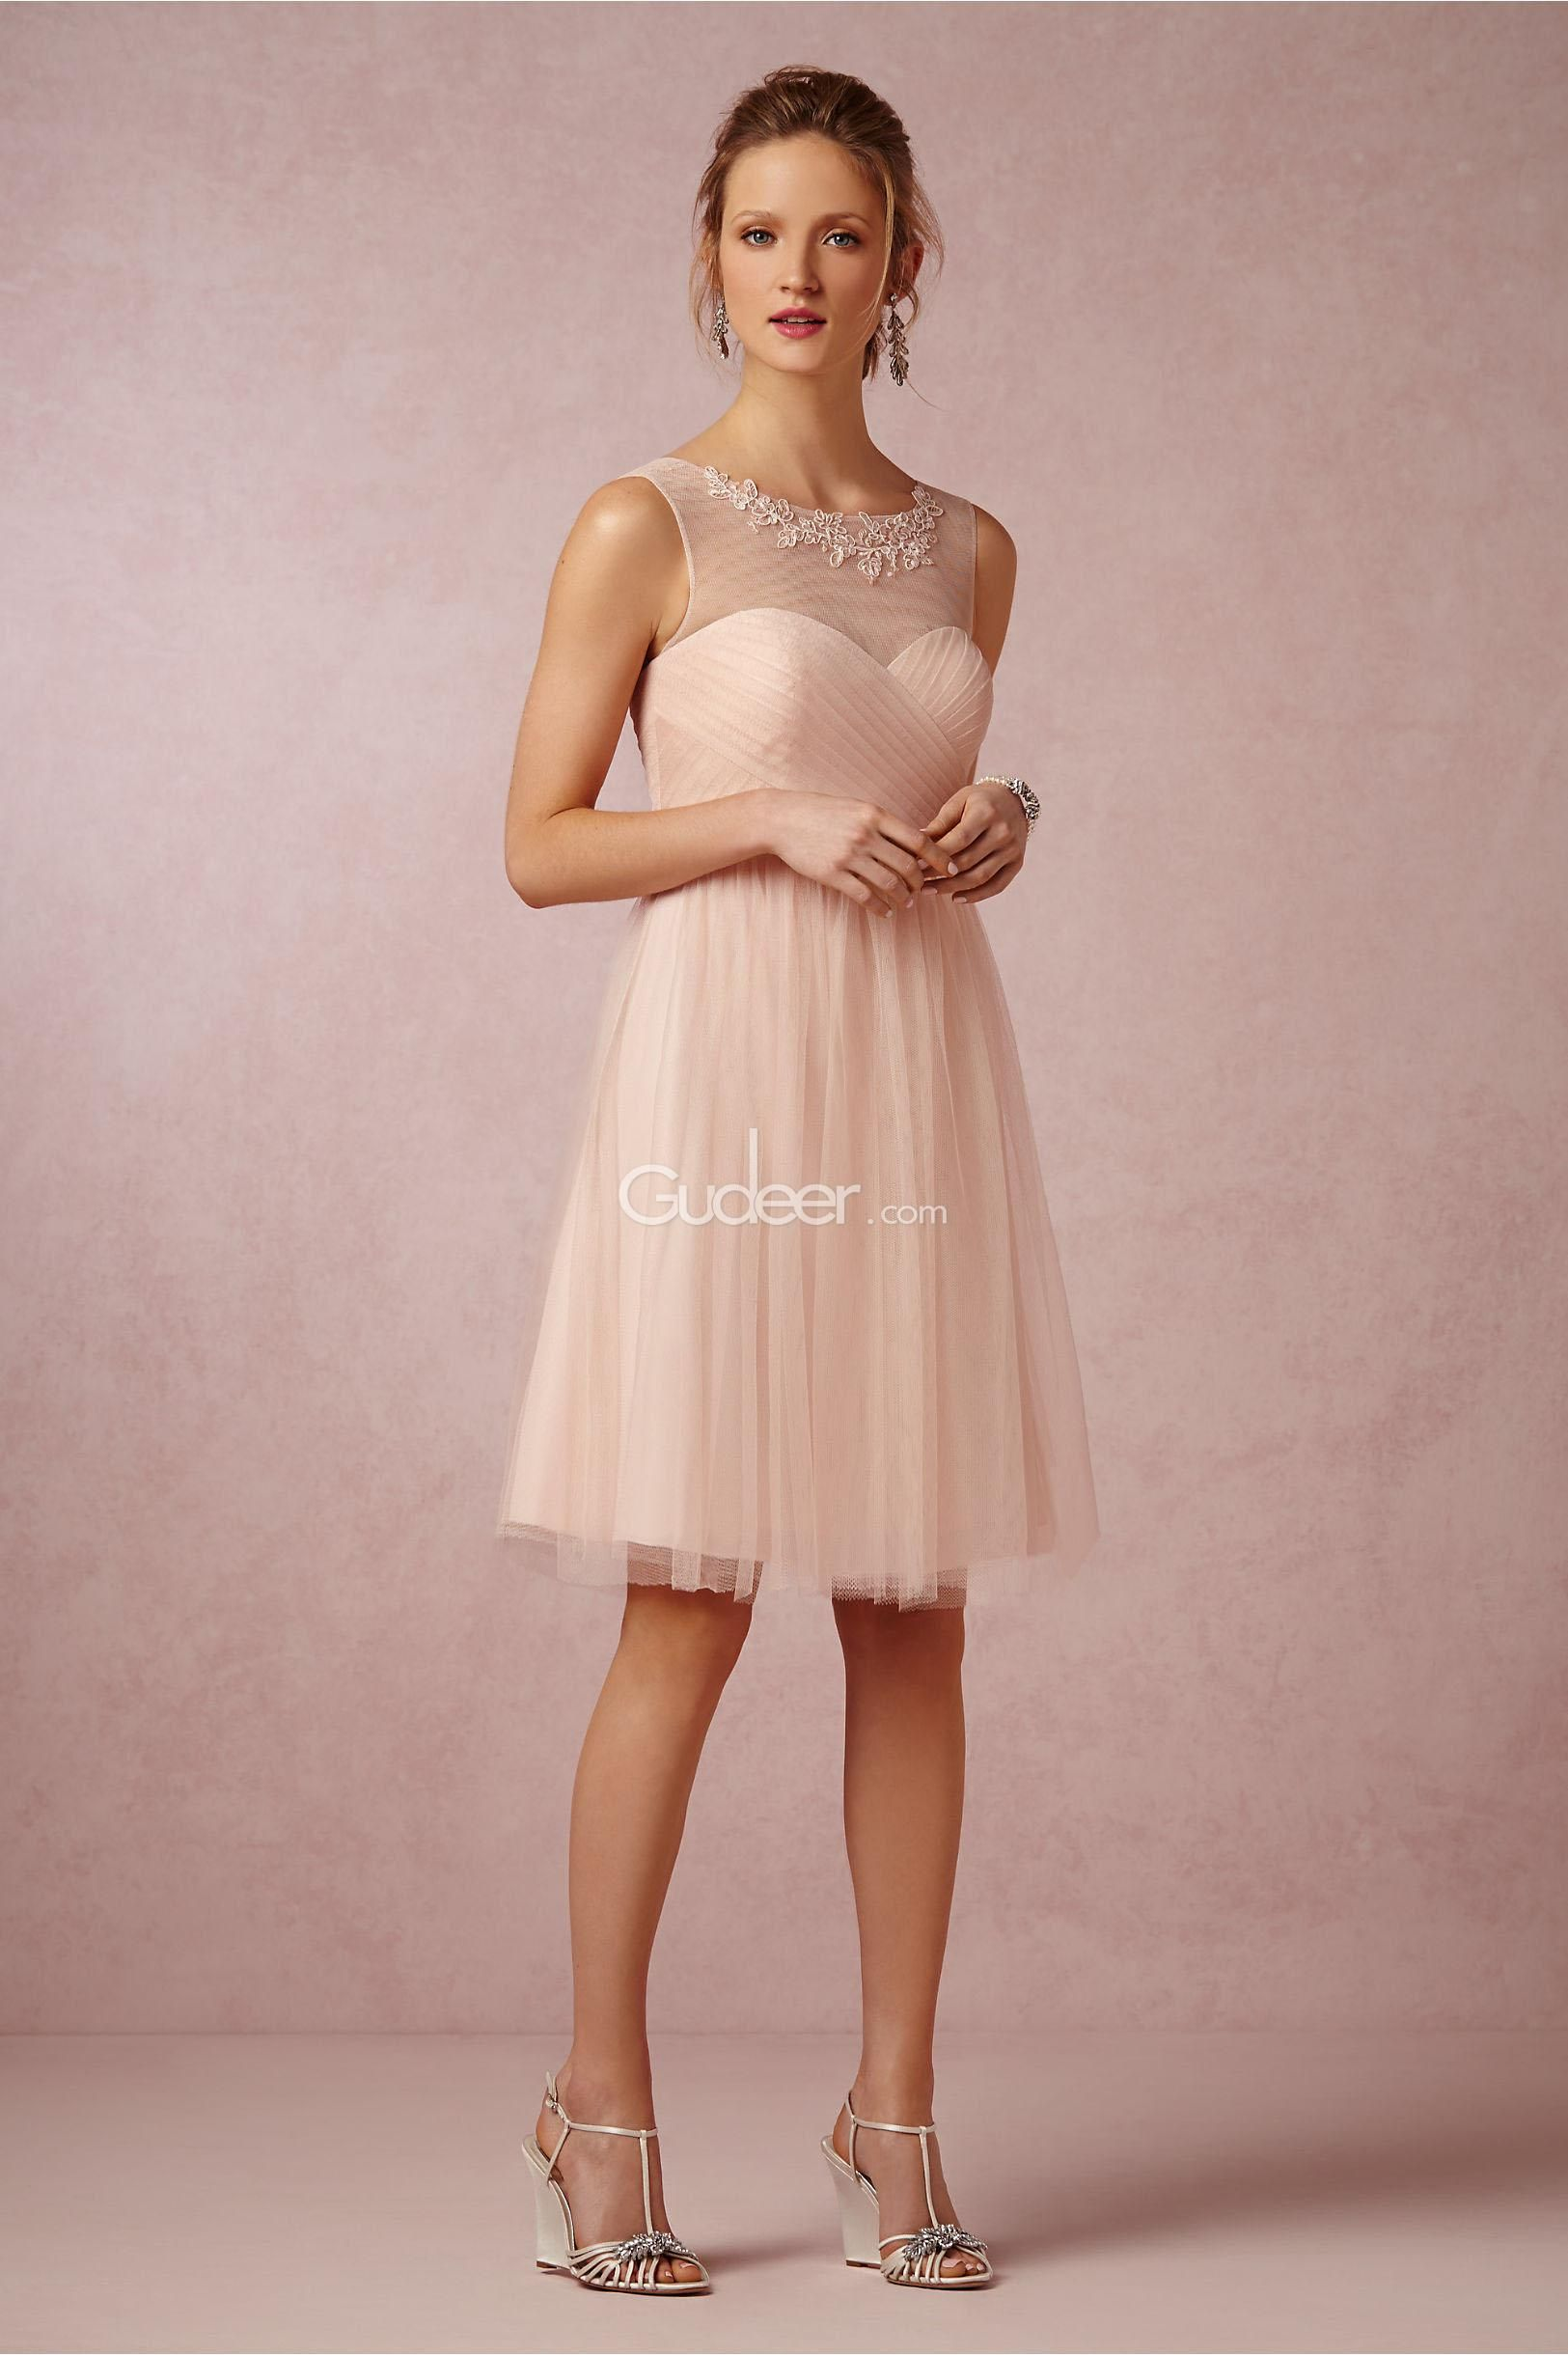 Peach A Line Tulle Short Bridesmaid Dress. cheap bridesmaid dresses ...